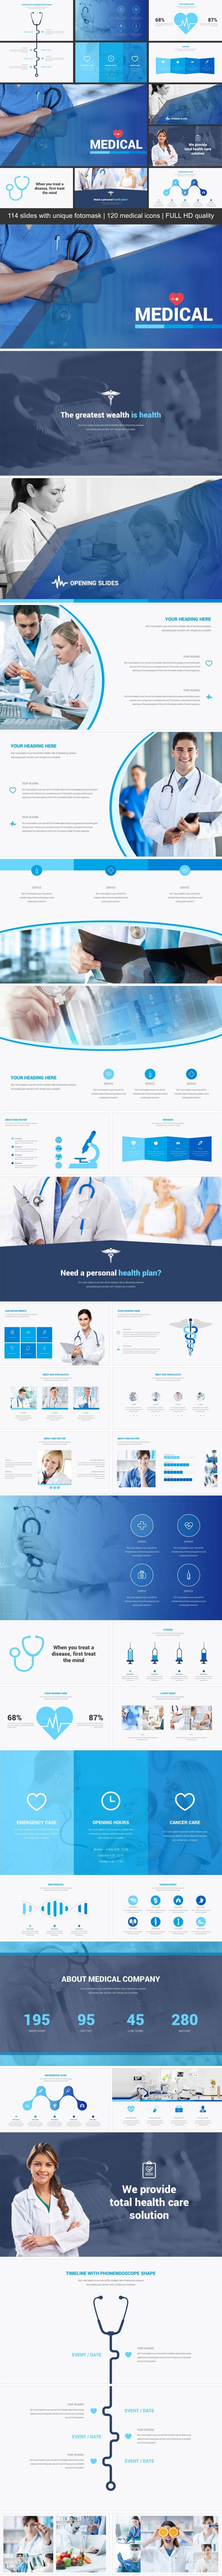 Medical - Business PowerPoint Templates